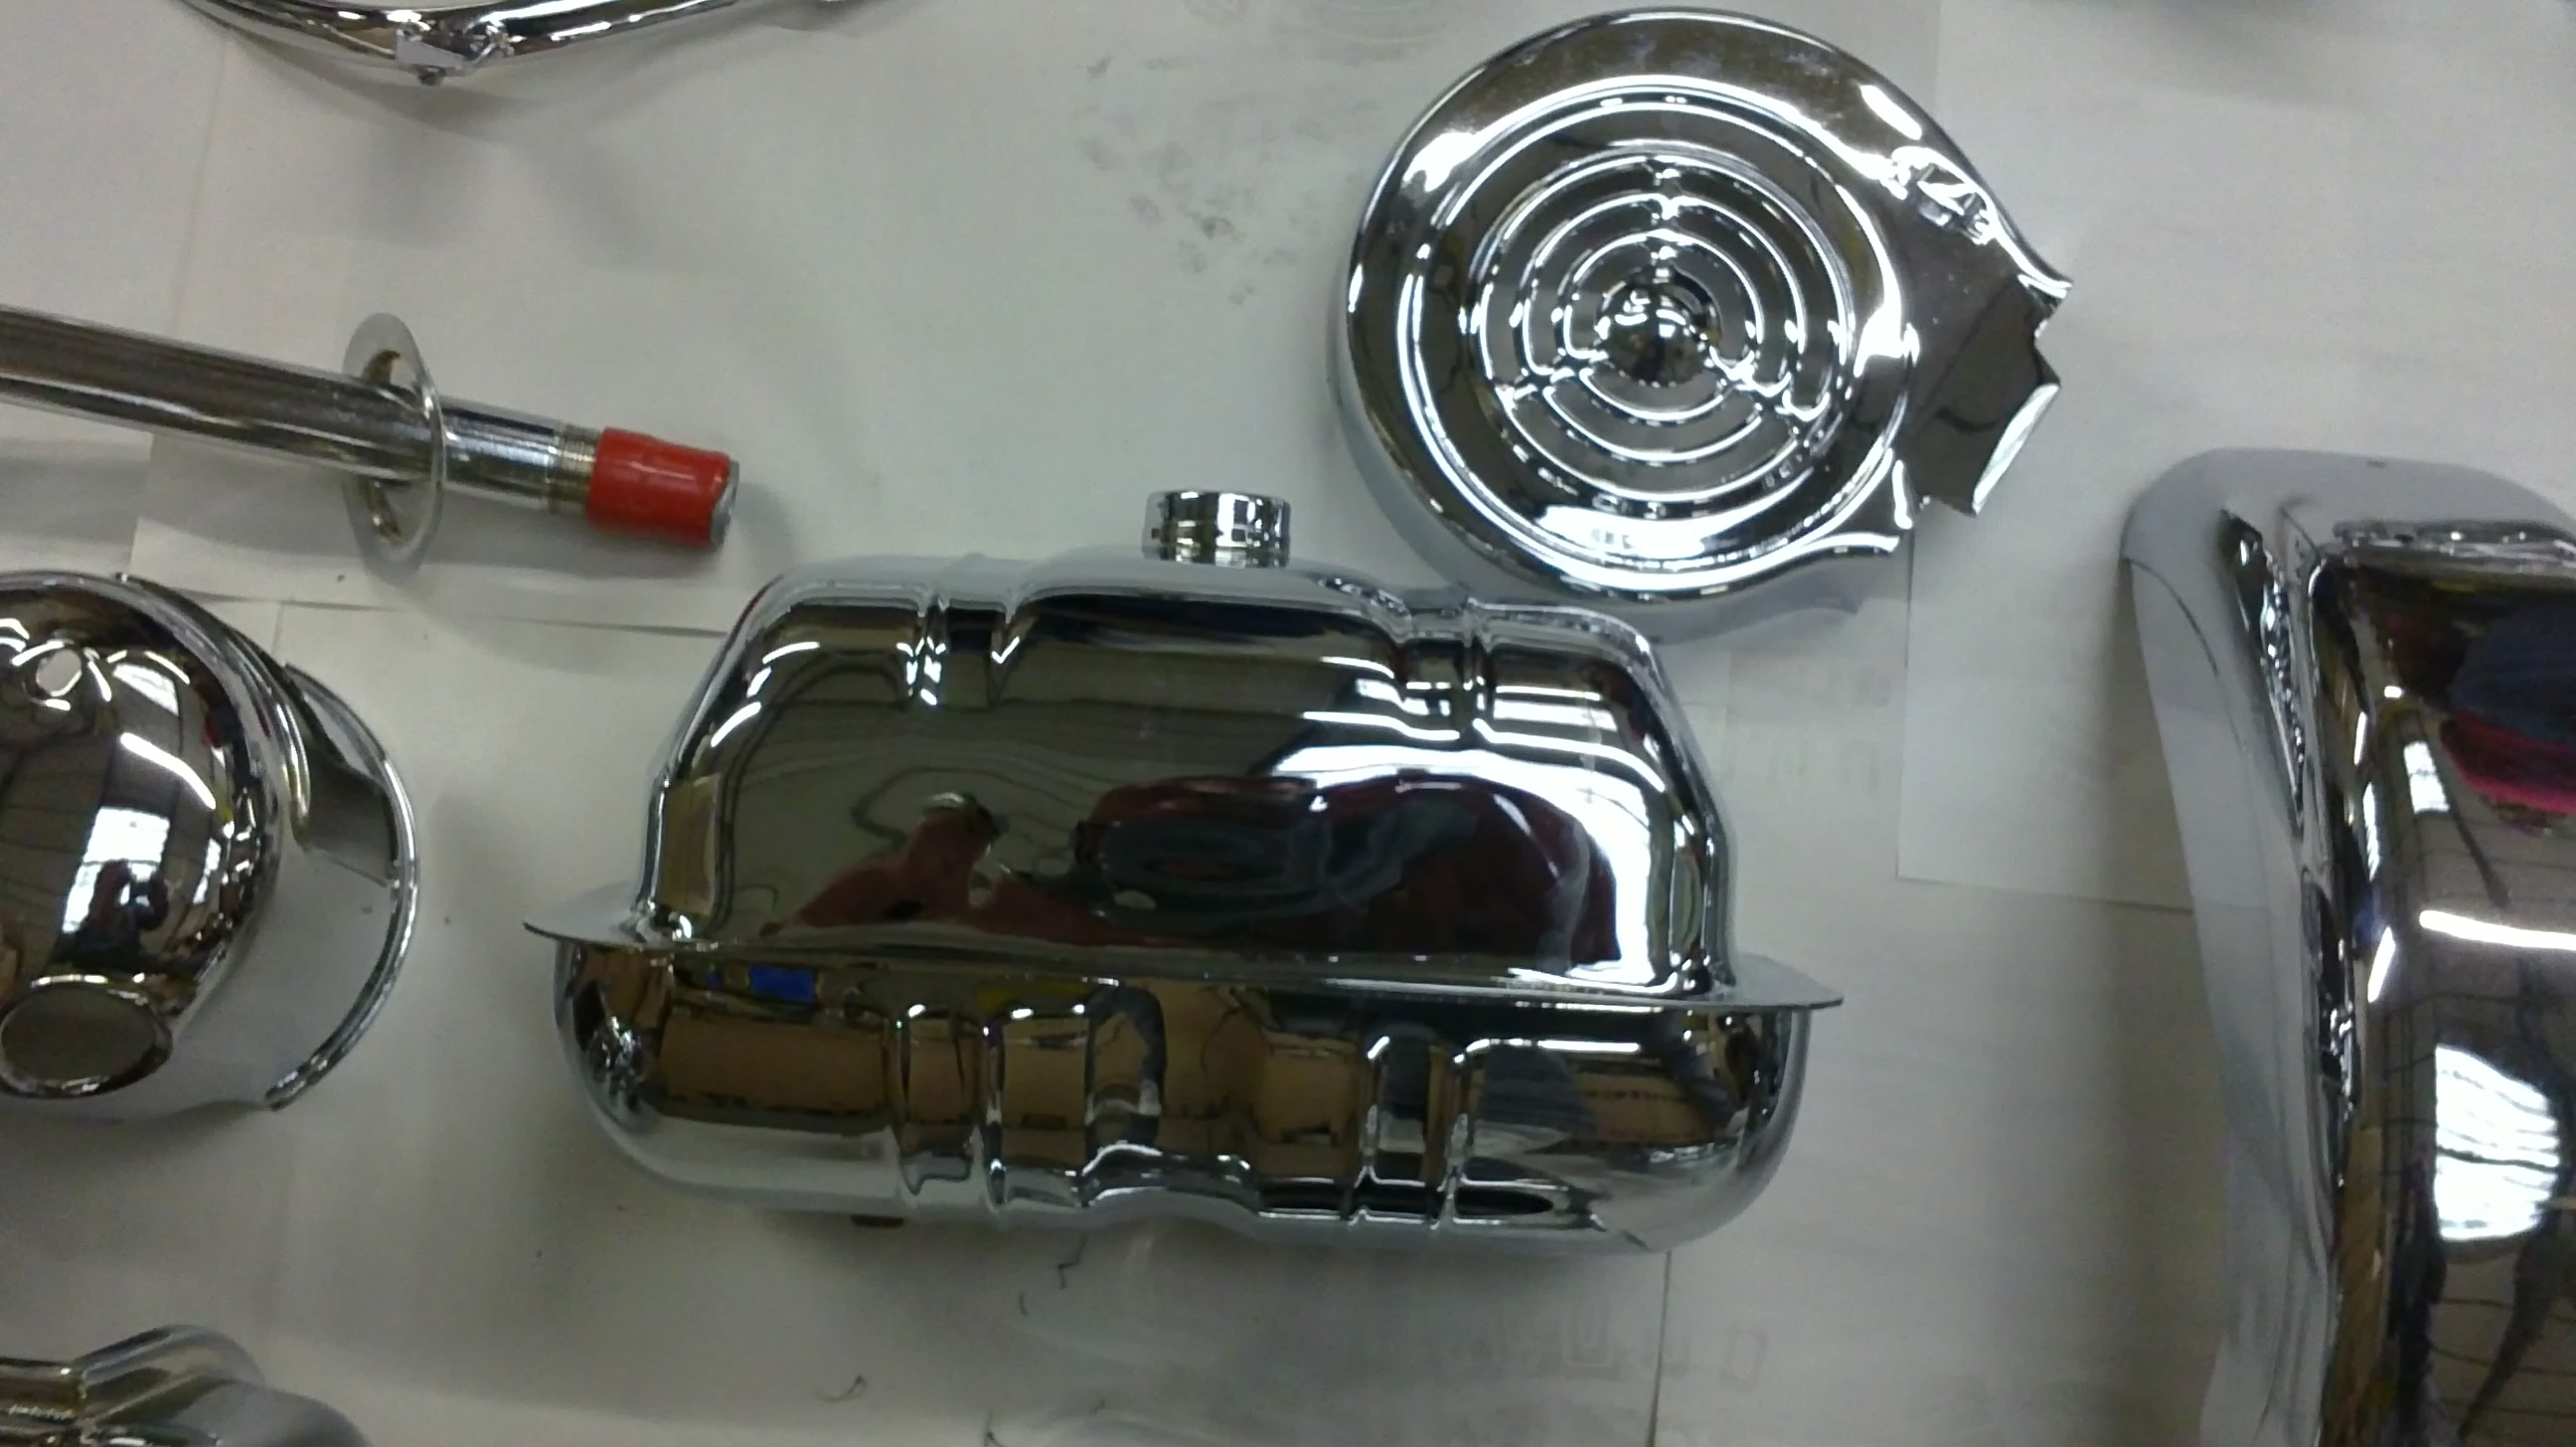 Chroming fuel tanks, mudguards and parts for motorcycles